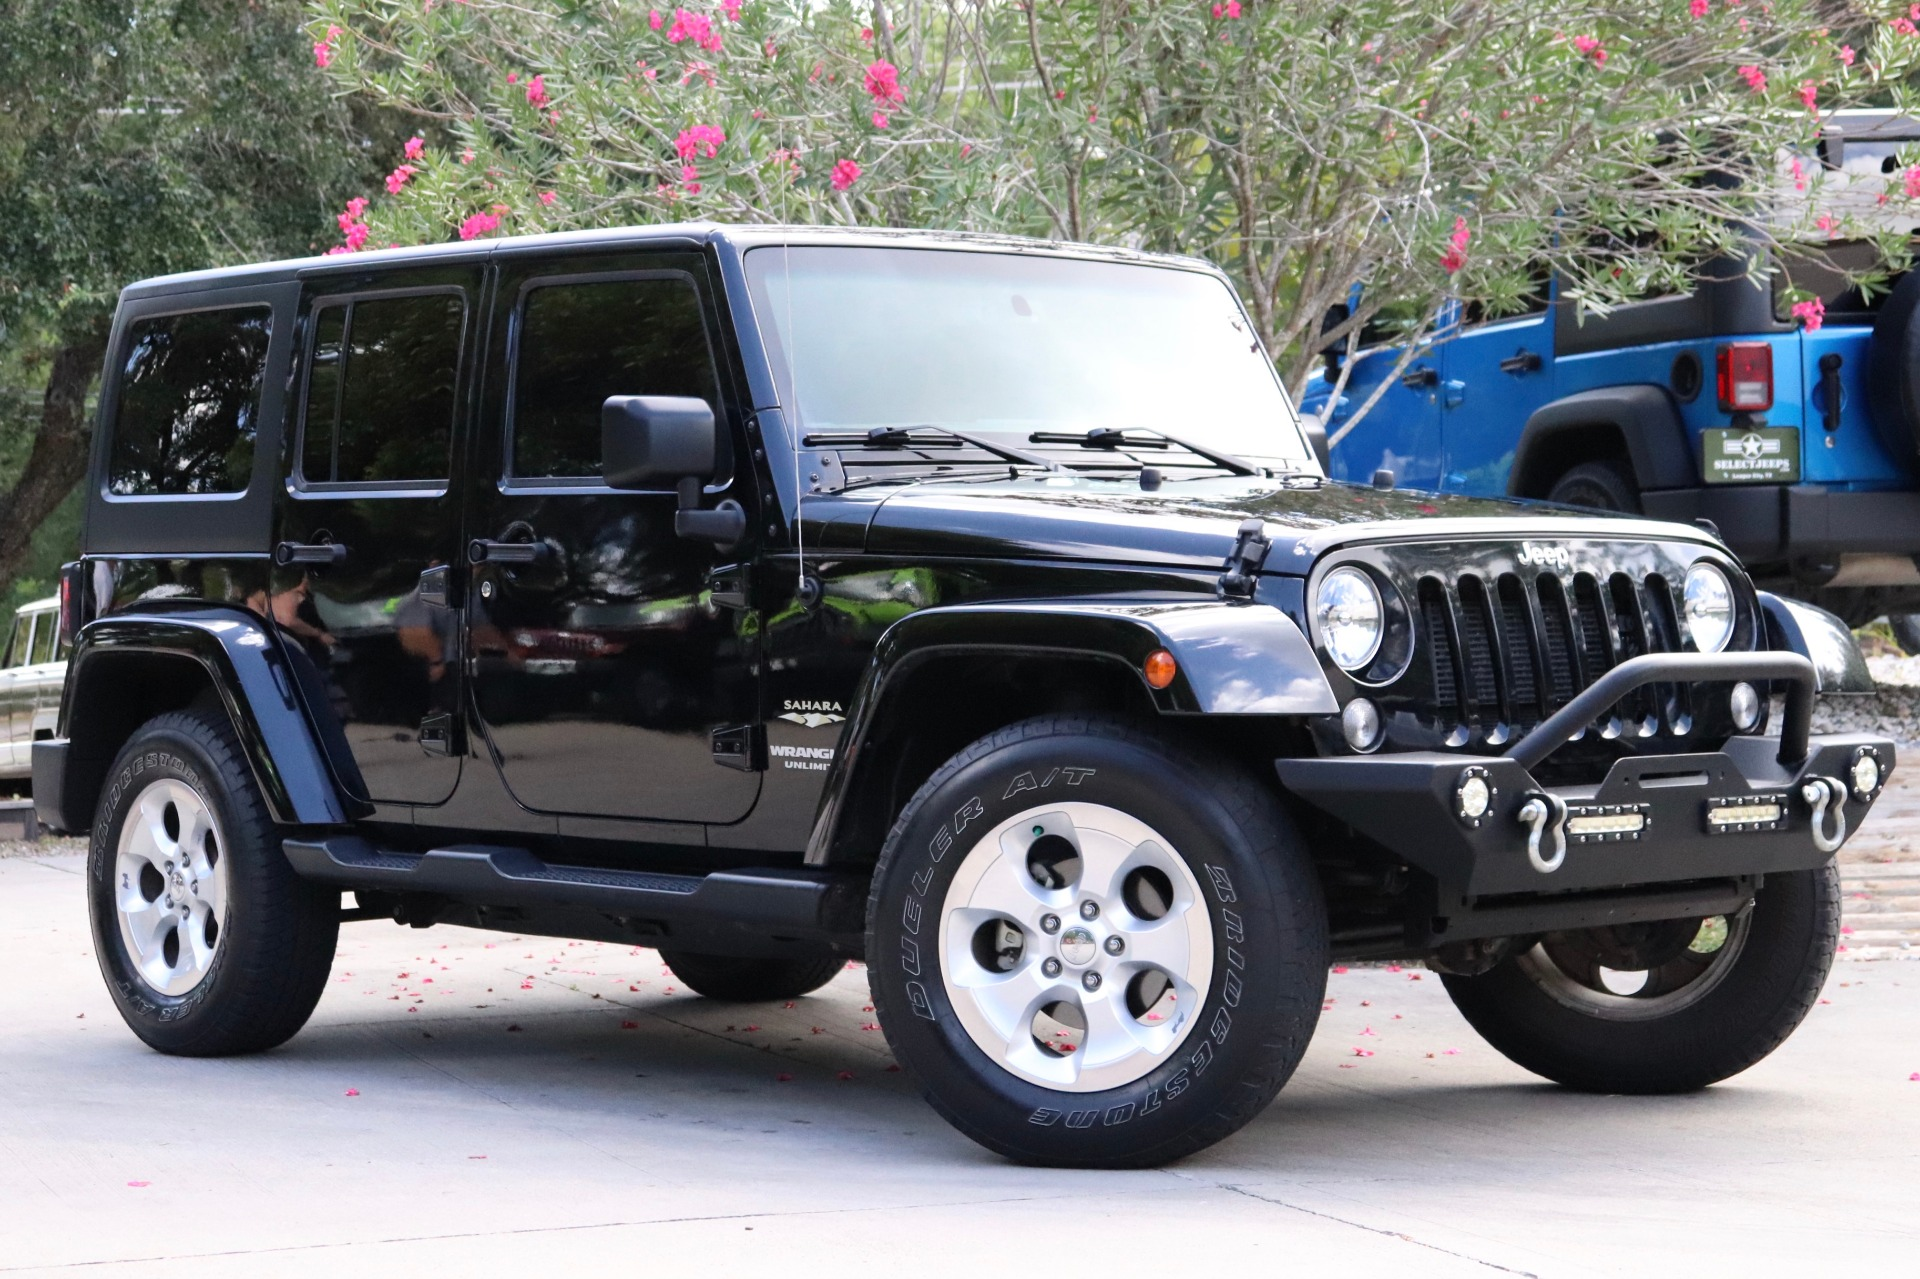 used 2015 jeep wrangler unlimited sahara sahara for sale. Black Bedroom Furniture Sets. Home Design Ideas